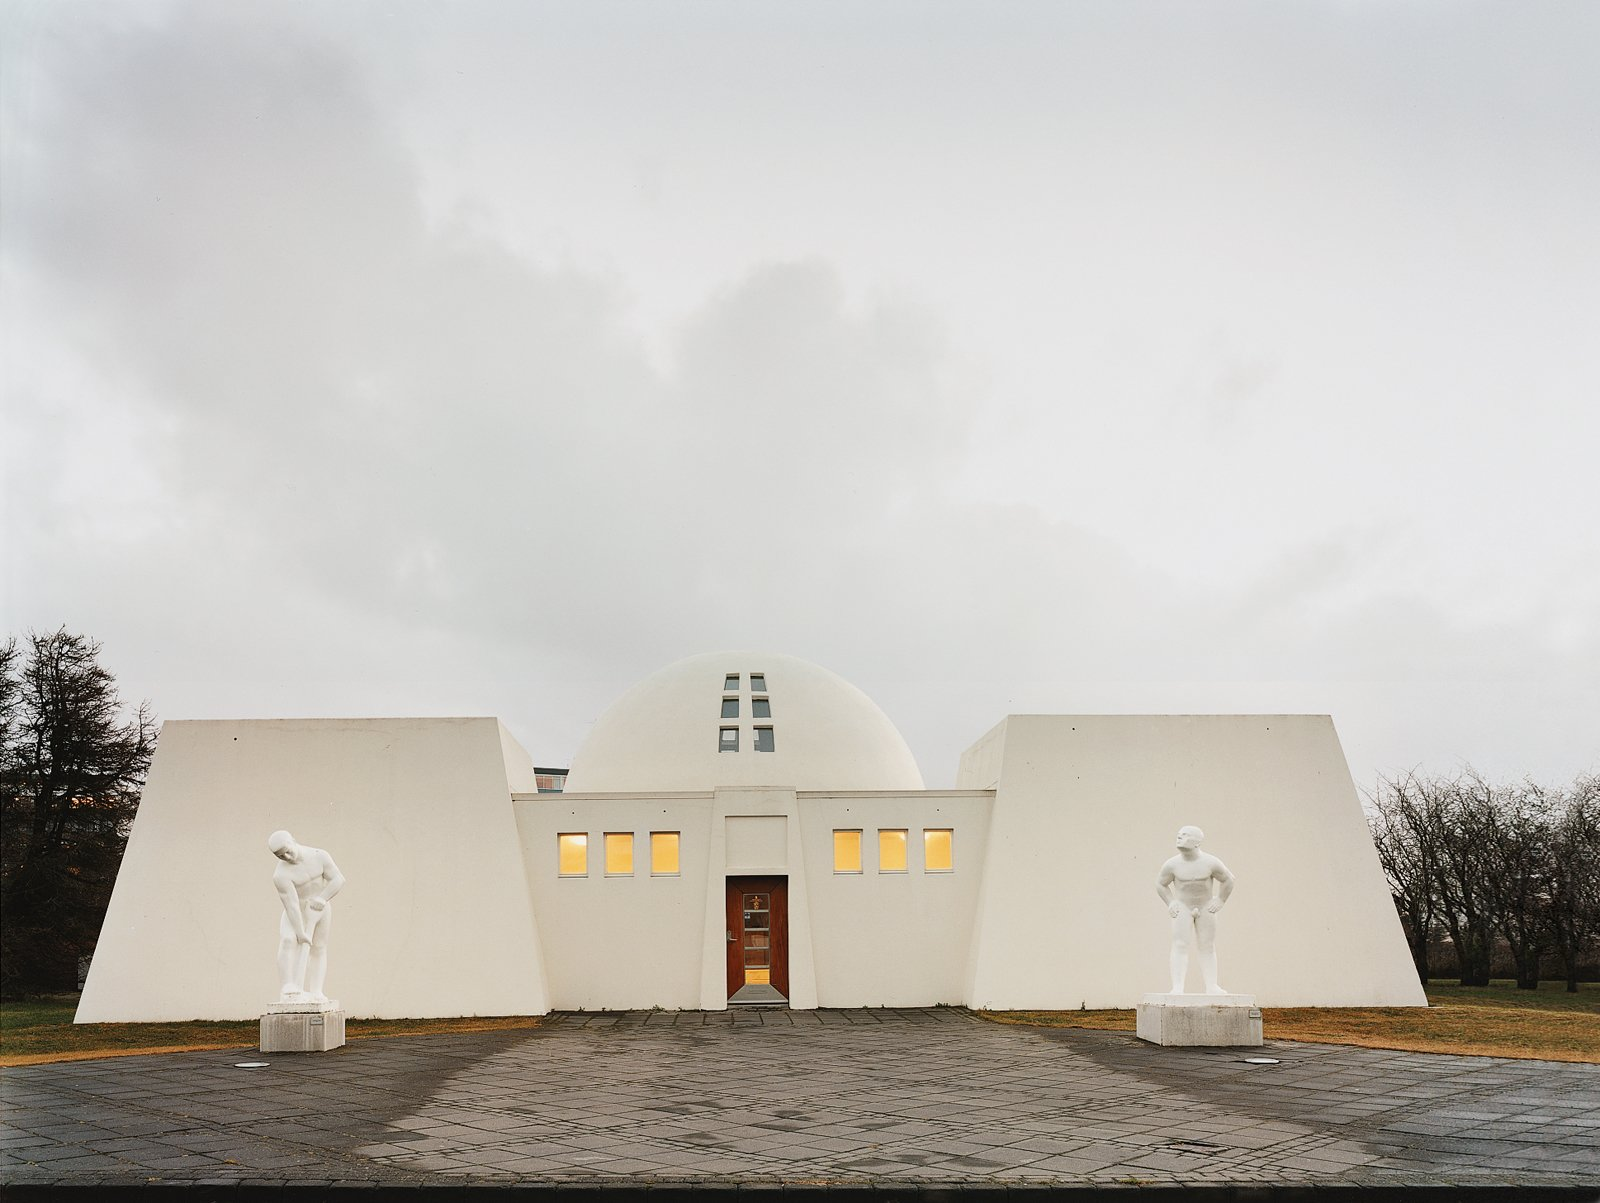 The Asmundur Sveinsson Collection is worth visiting for the architecture as much as the sculpture.